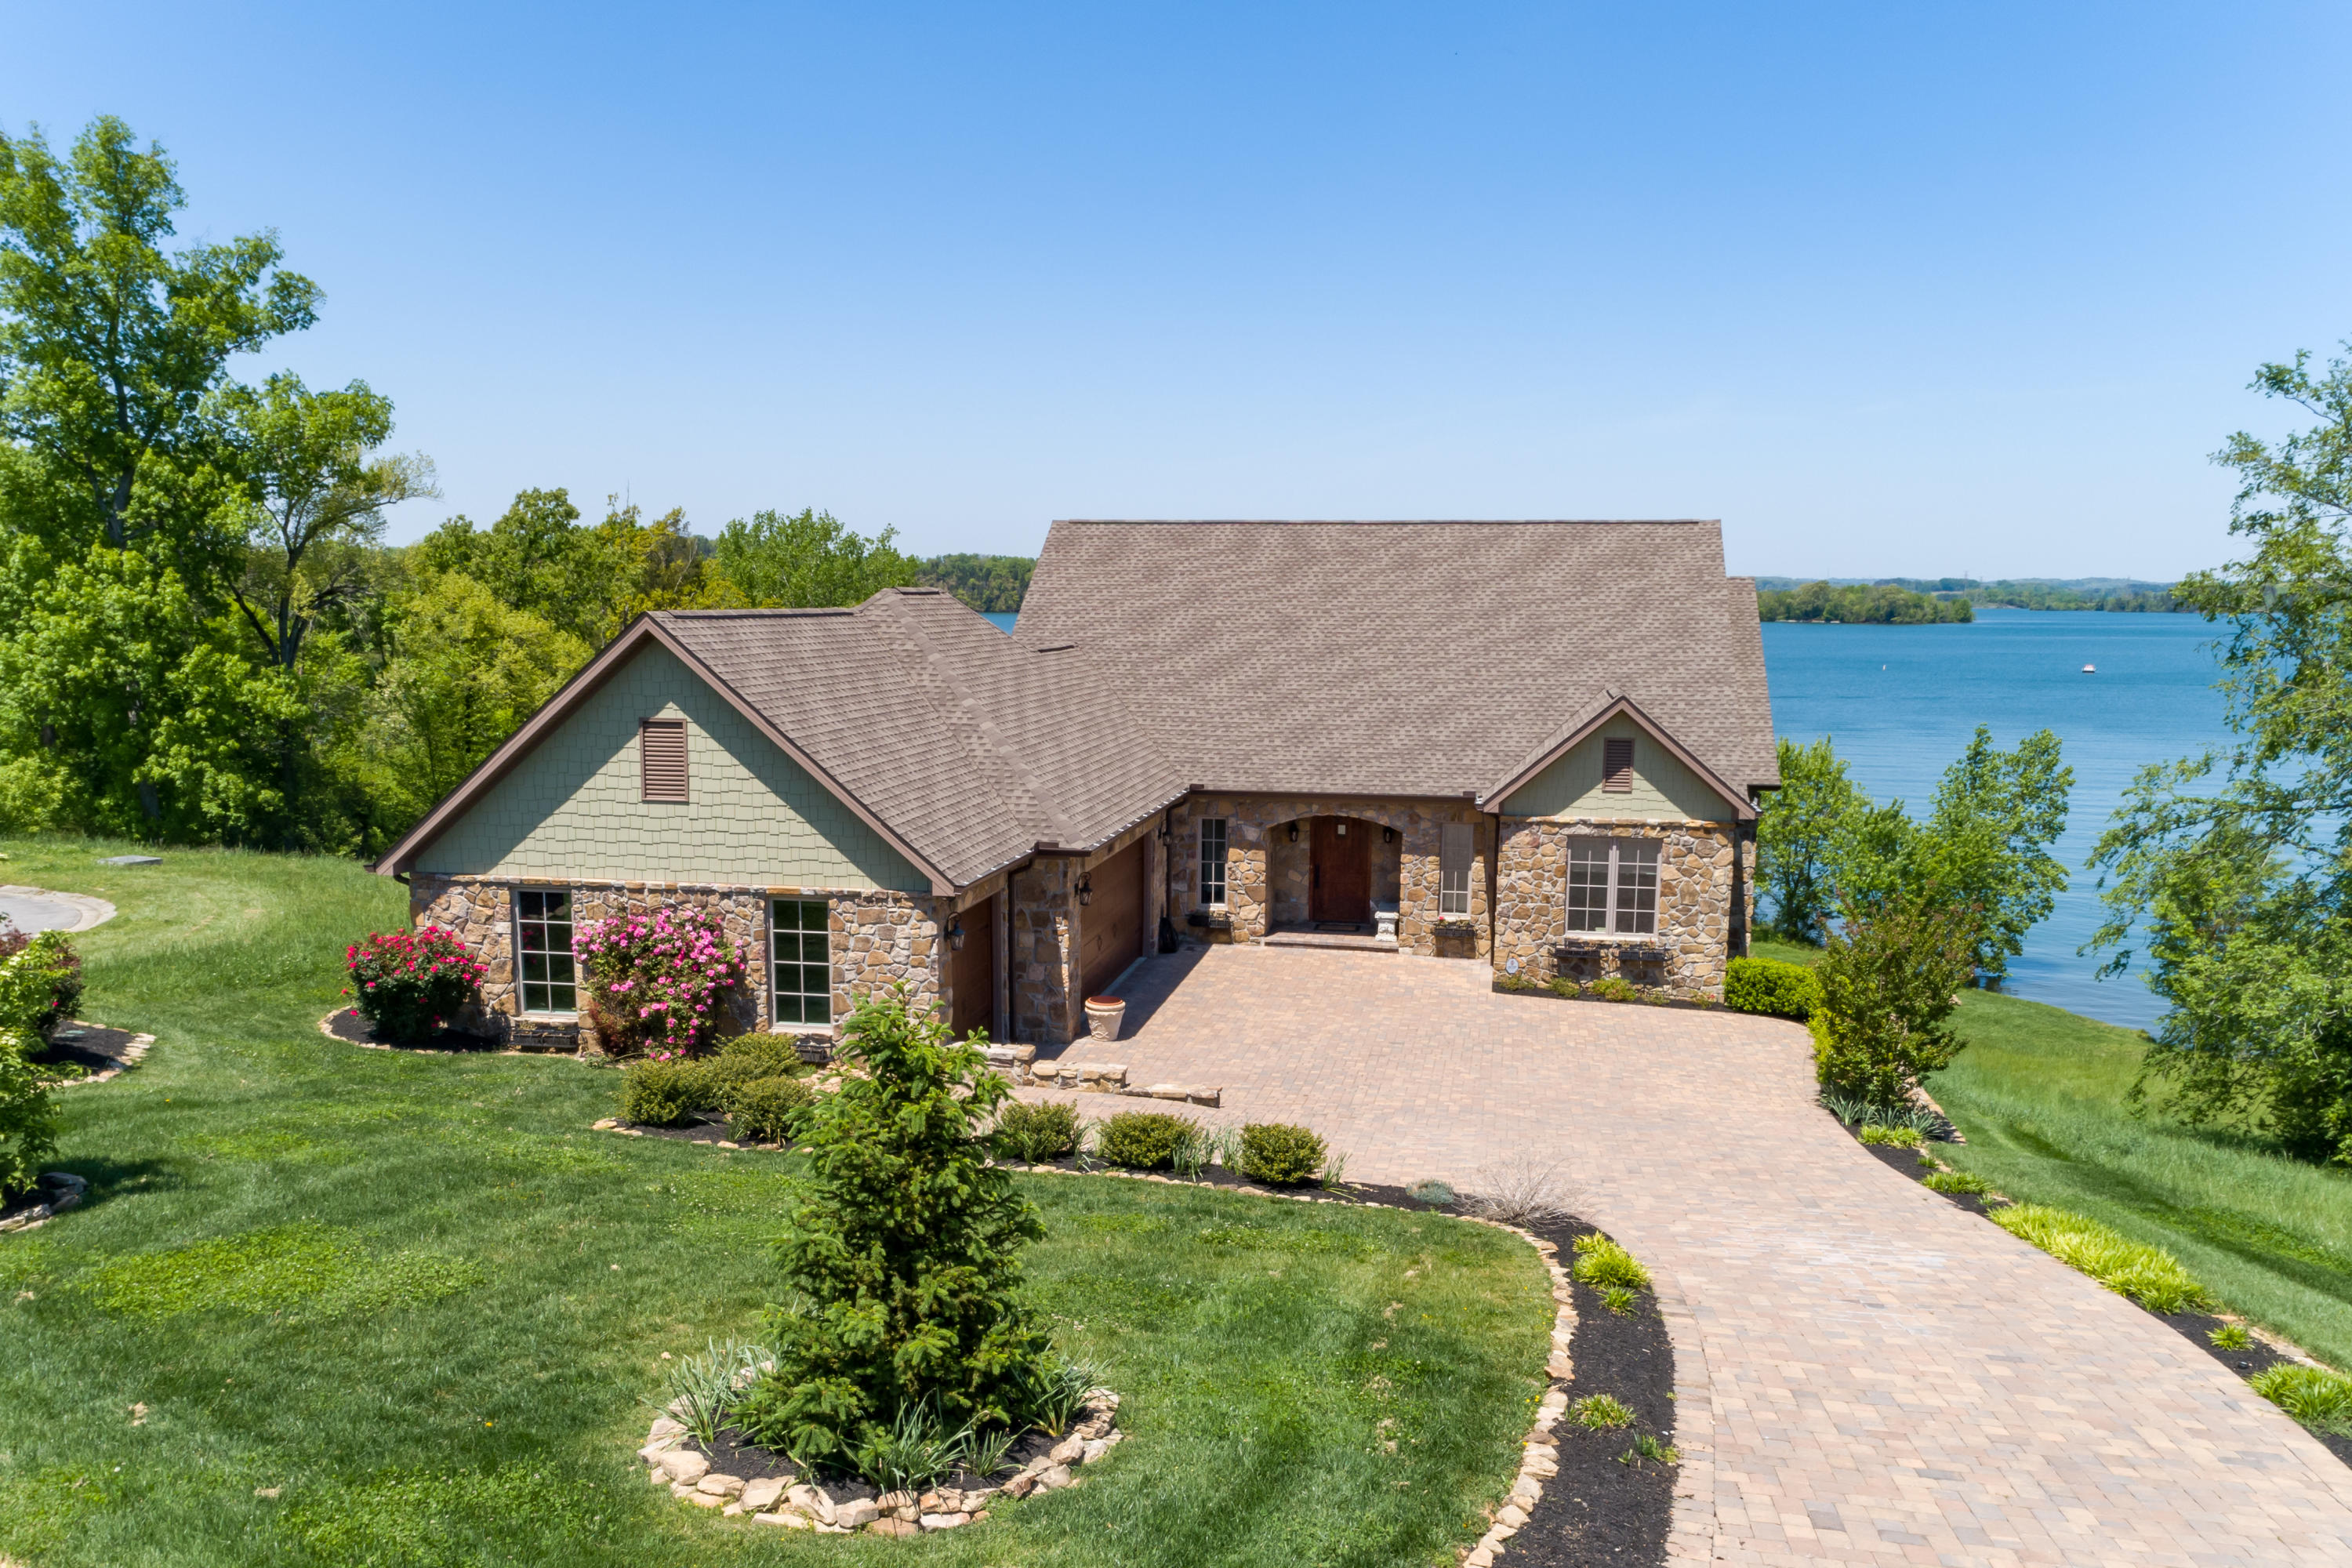 556 Cypress Pointe Drive, Lenoir City, Tennessee 37772, 4 Bedrooms Bedrooms, ,3 BathroomsBathrooms,Single Family,For Sale,Cypress Pointe,1116338